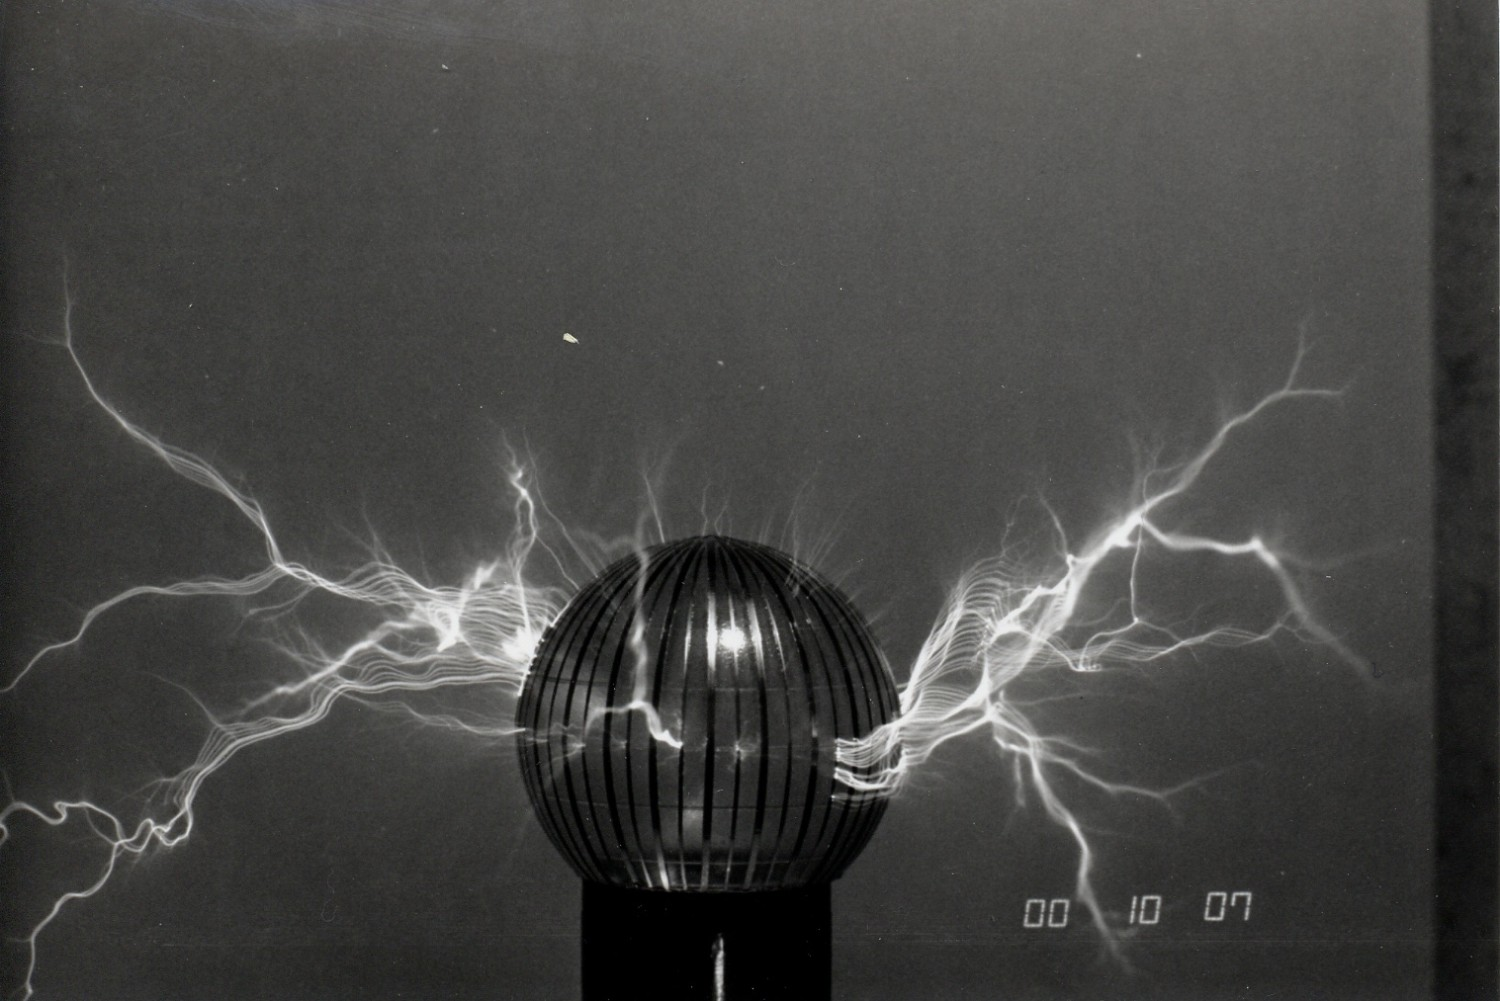 1989 capacitive discharge Tesla coil experimental top load